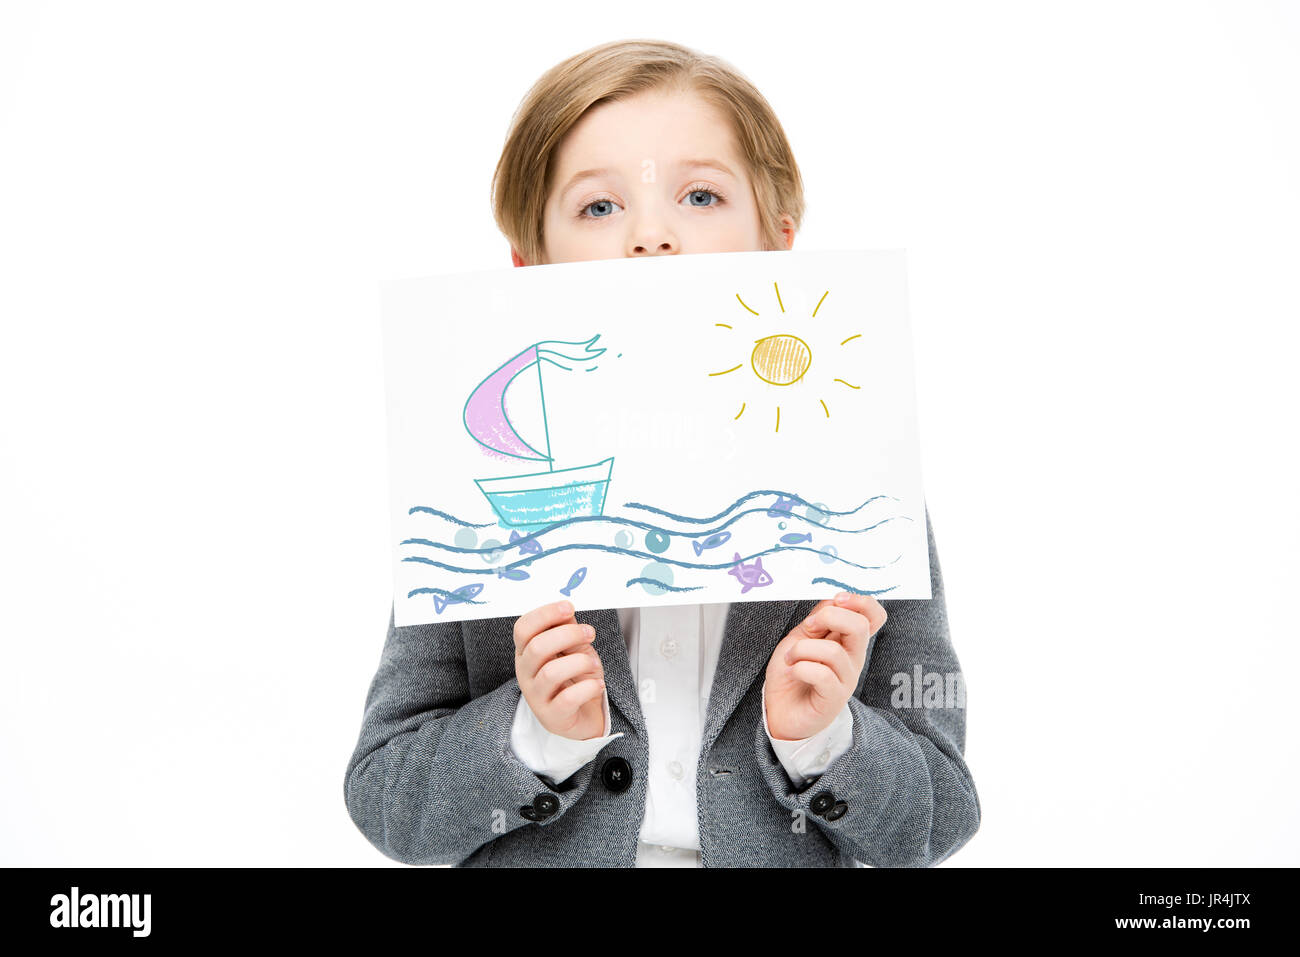 Small kid with painting - Stock Image